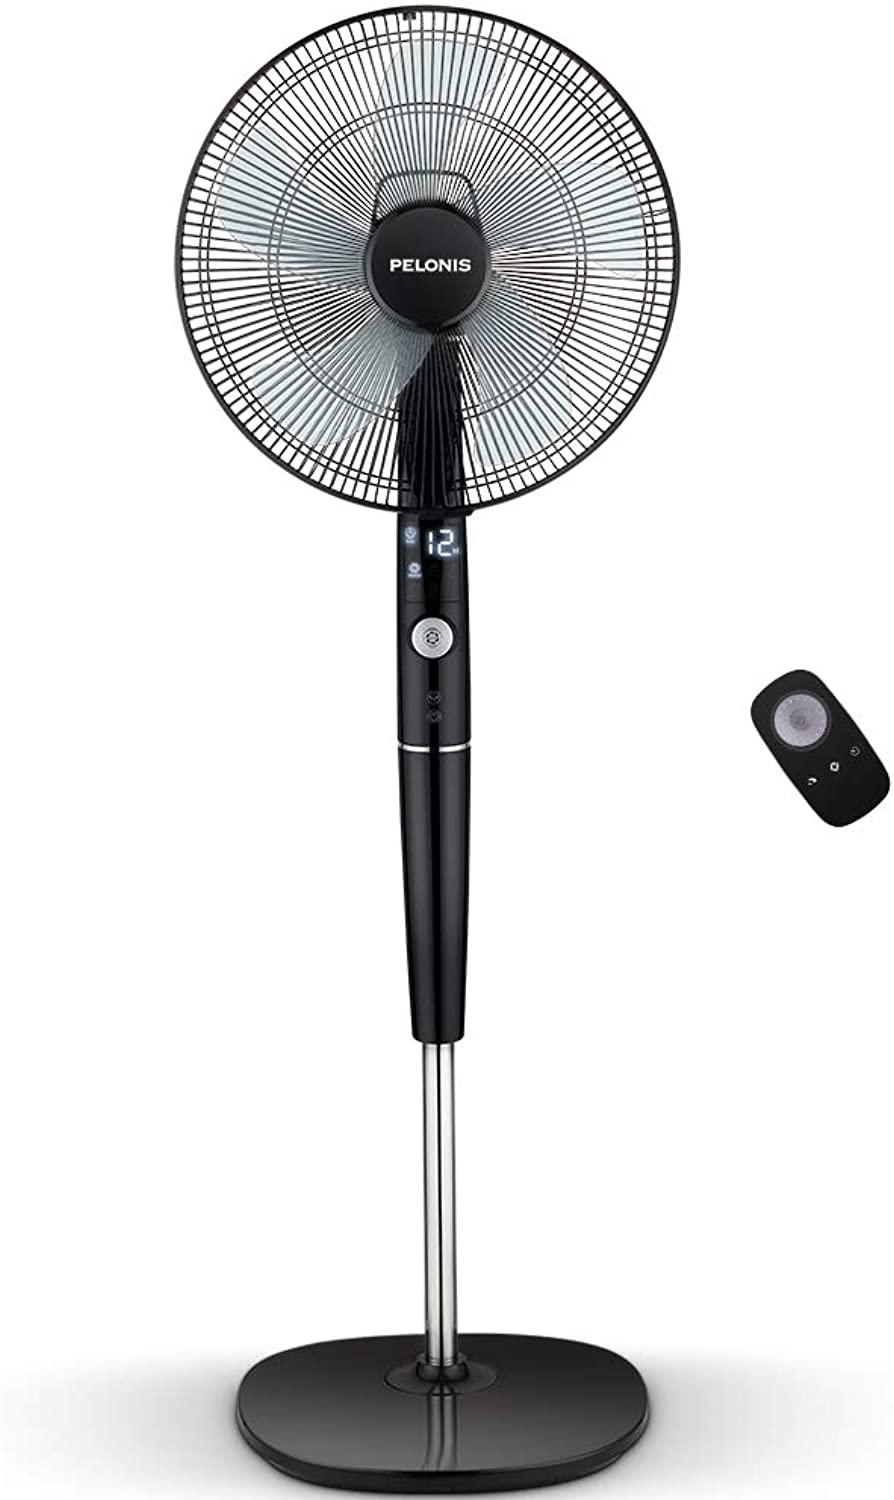 PELONIS Fan, Quiet DC Motor Oscillating Standing Pedestal Fan with Powerful 26 Speed, 5 Silent Modes, 12h On Off Timer, Adjustable Height and Tilt, Remote Control, 16-Inch, Black